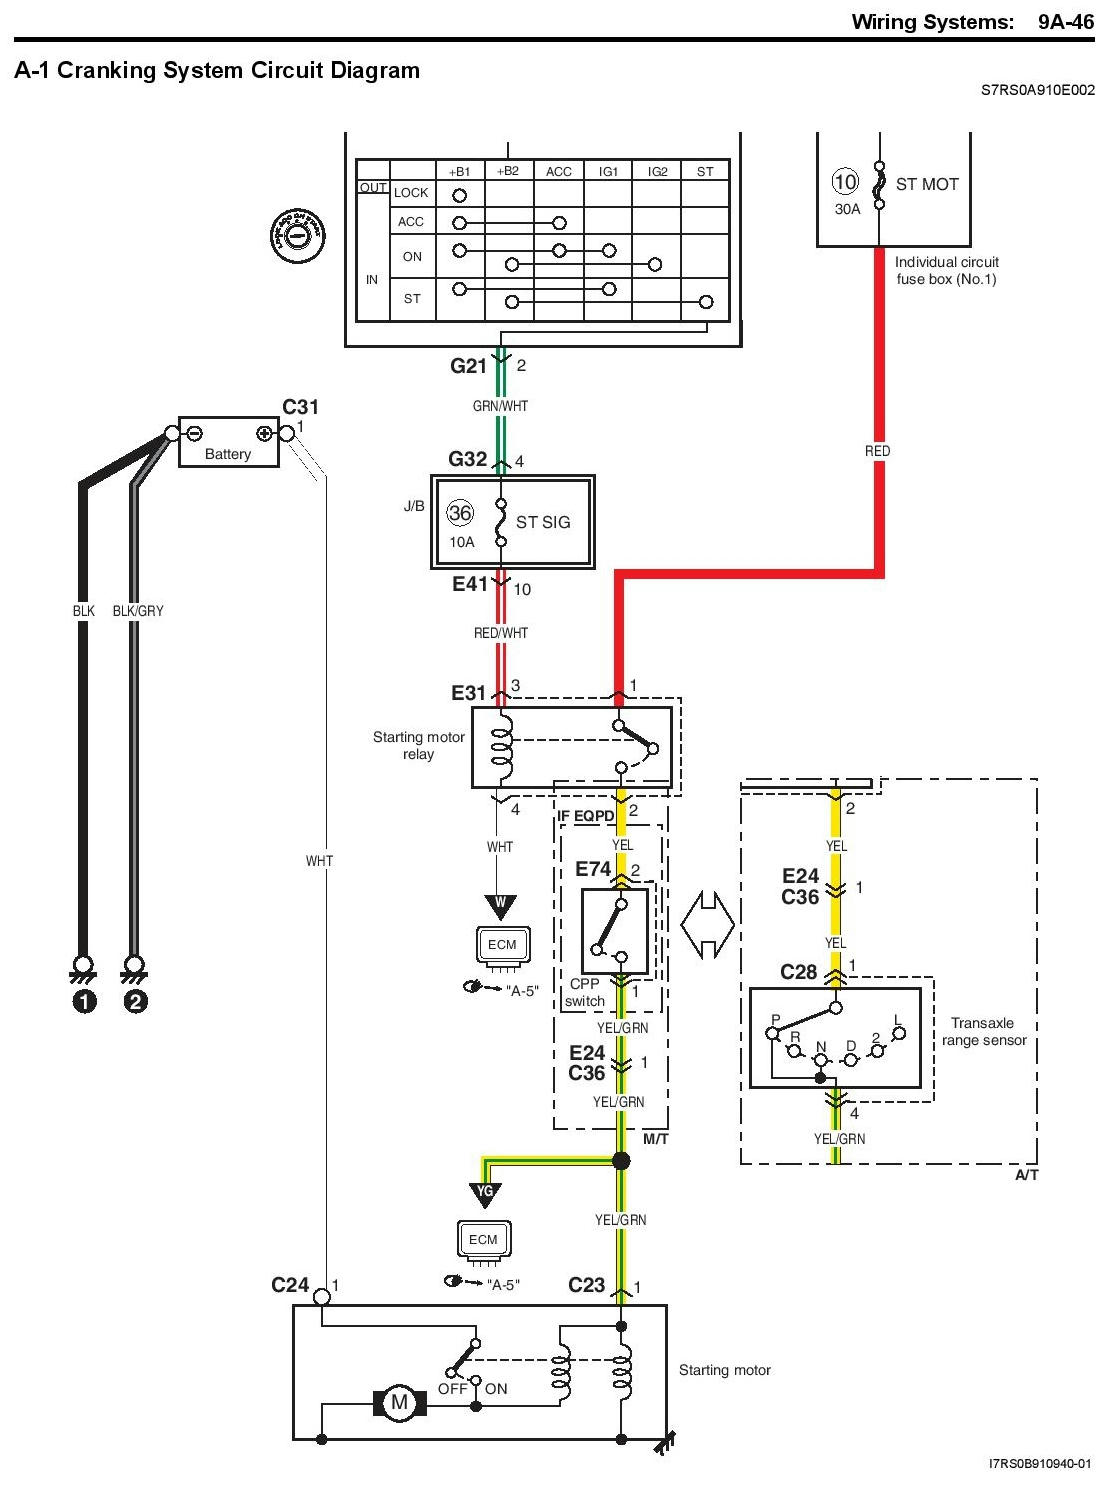 m15a 2009 engine wiring diagram ,start engine out of car